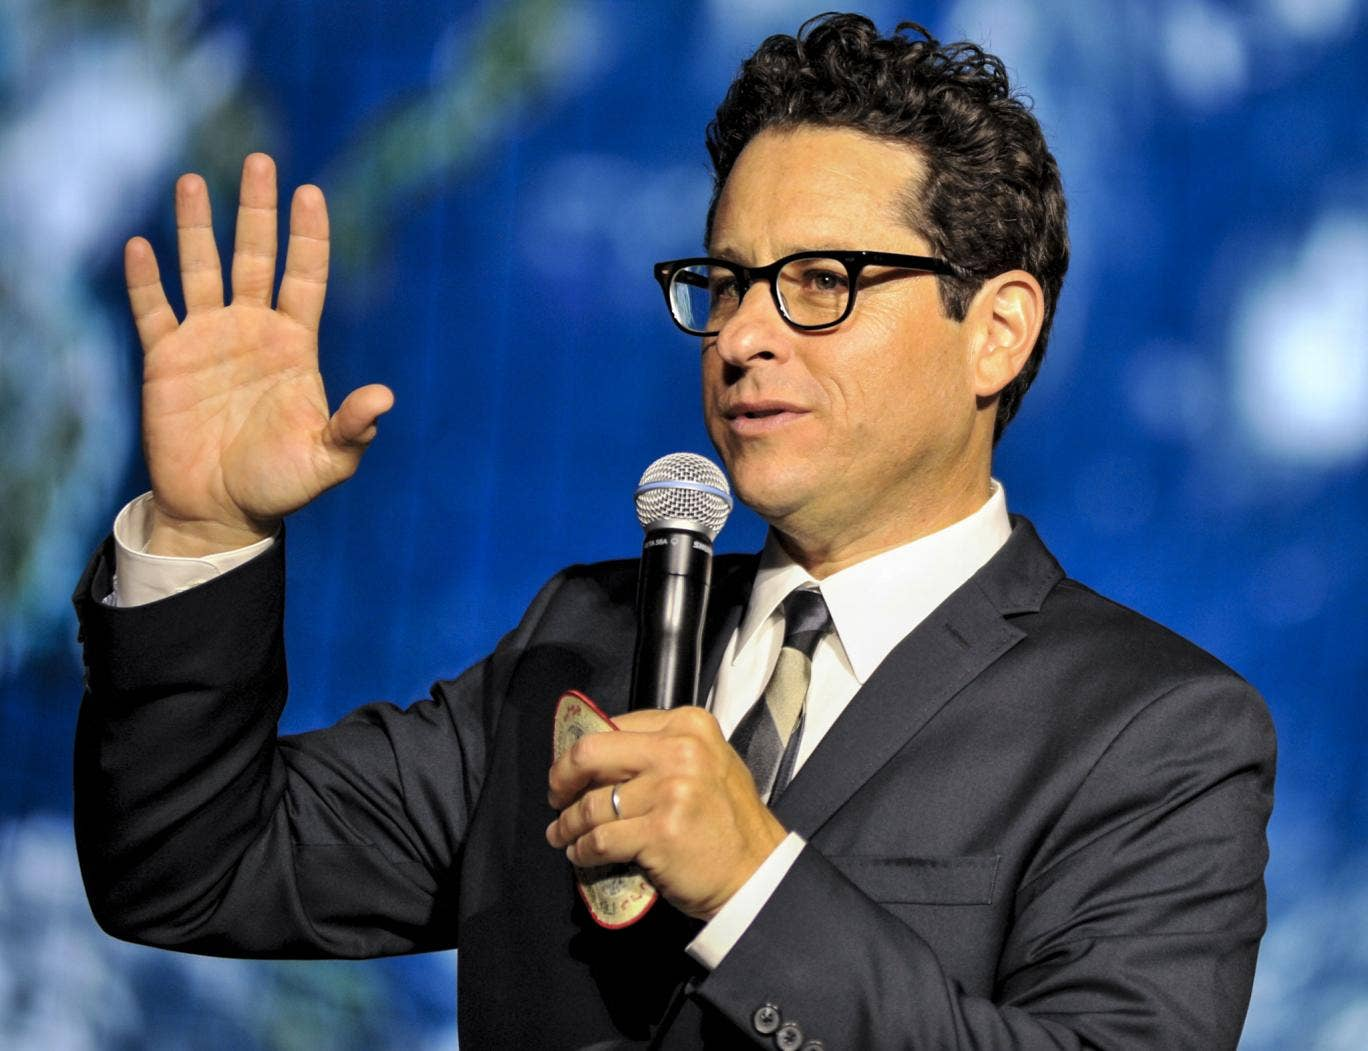 J.J. Abrams is set to release the the next Star Wars film in 2015